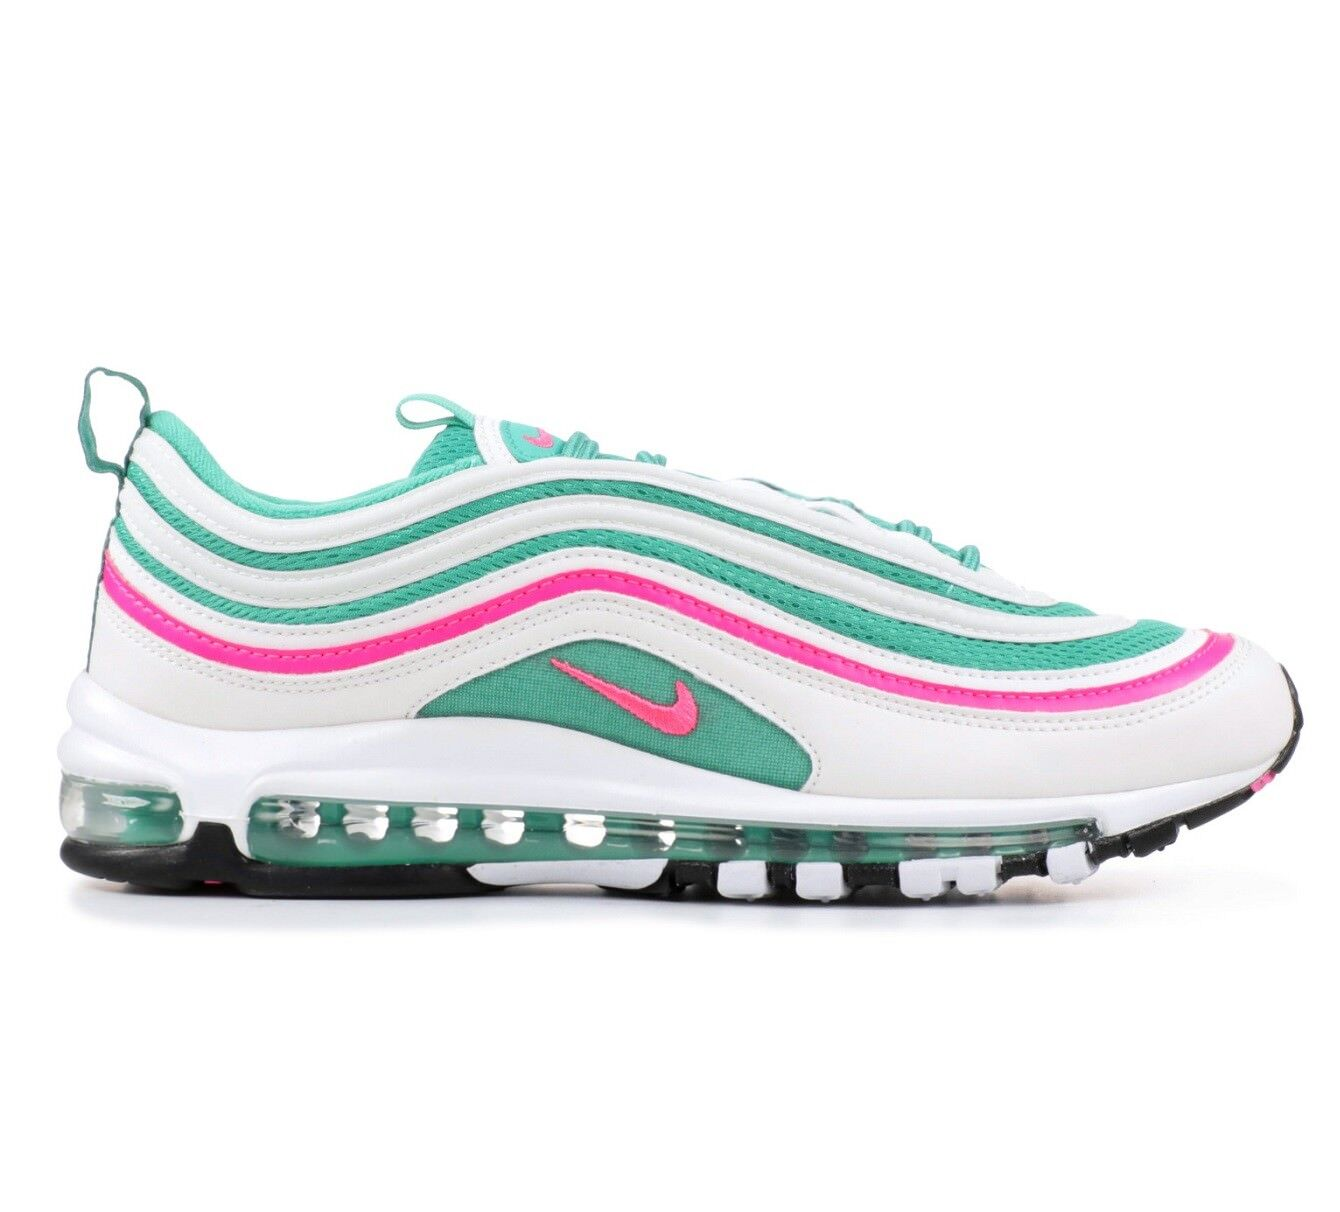 Nike Air Max 97 South Beach Mens 921826-102 White Kinetic Green Shoes Size 9